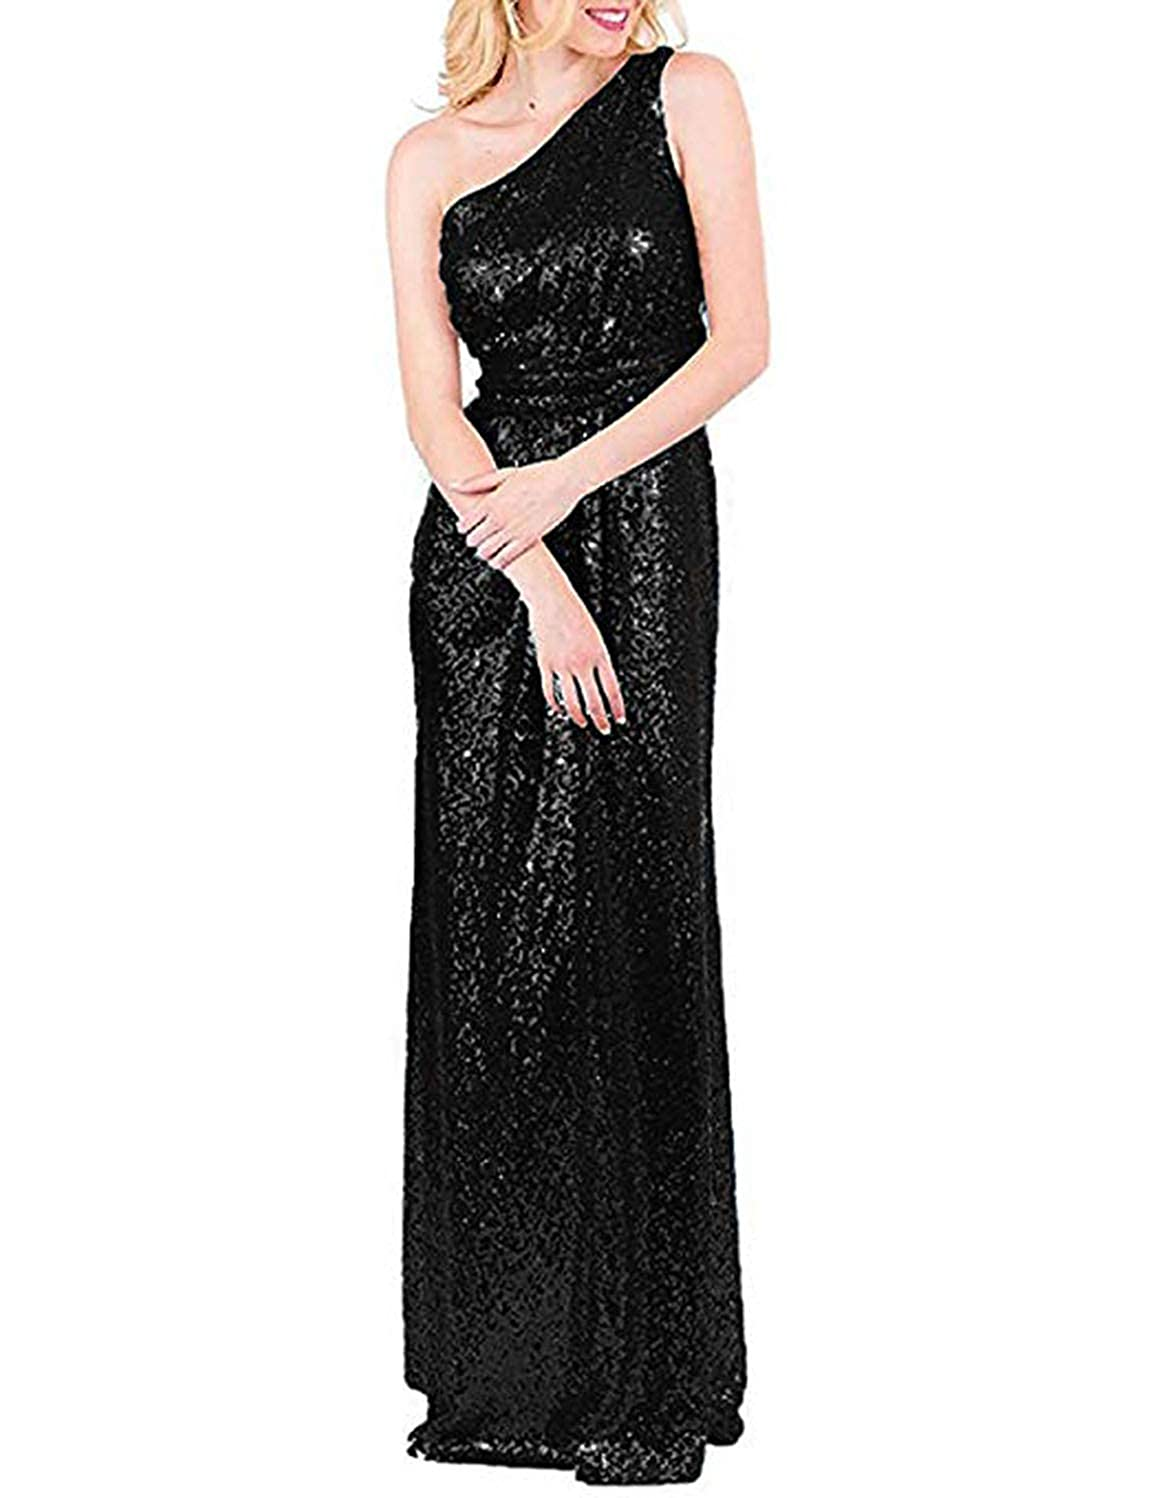 Black TTYbridal 2019 Sequins Bridesmaid Dress Long One Shoulder Formal Evening Gown B2